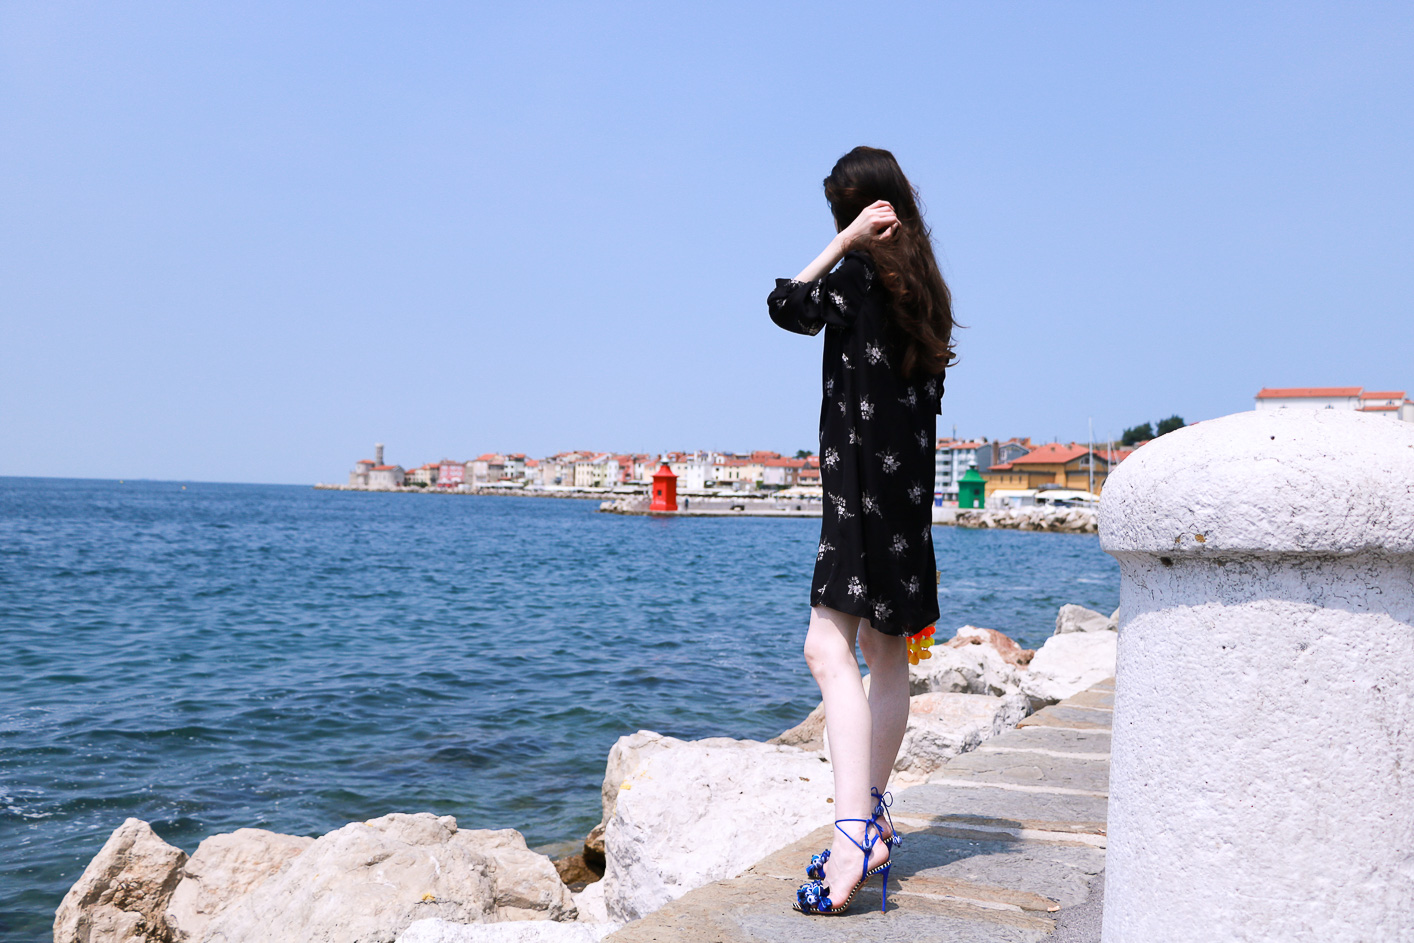 Fashion blogger Veronika Lipar of Brunette From Wall Street wearing chic dark floral shirt dress by the sea